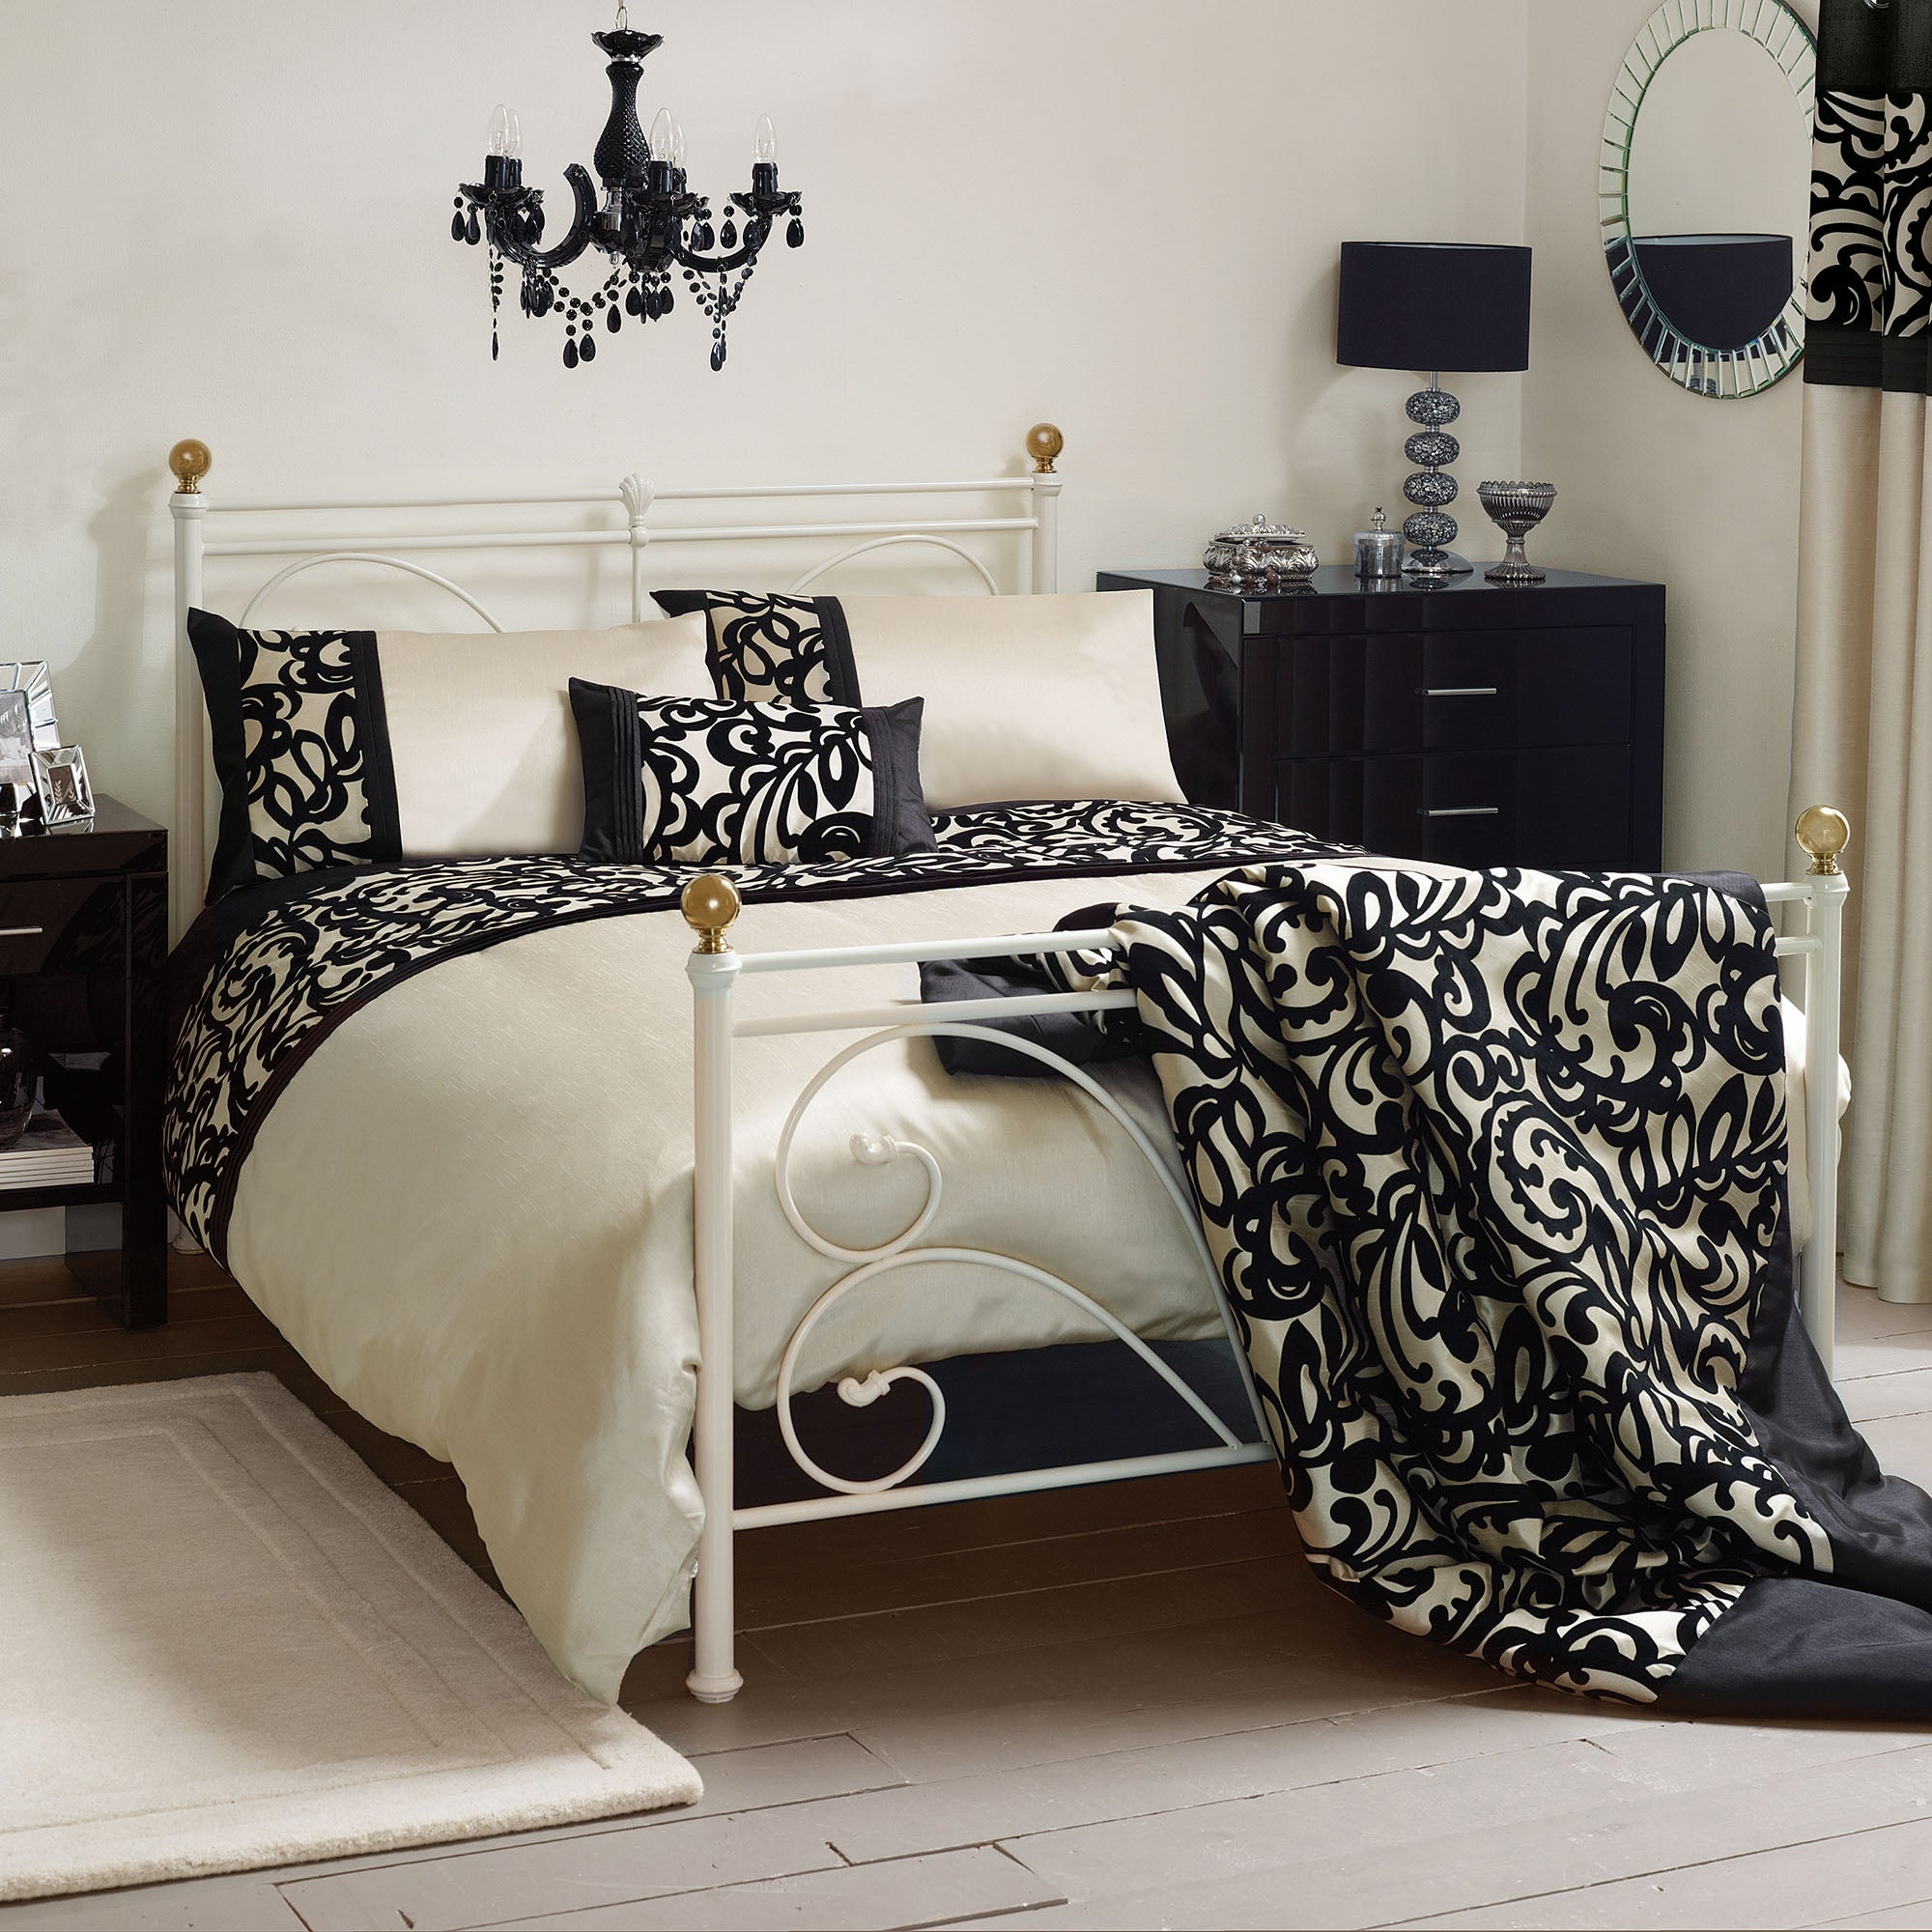 Black Baroque Flock Collection Duvet Cover